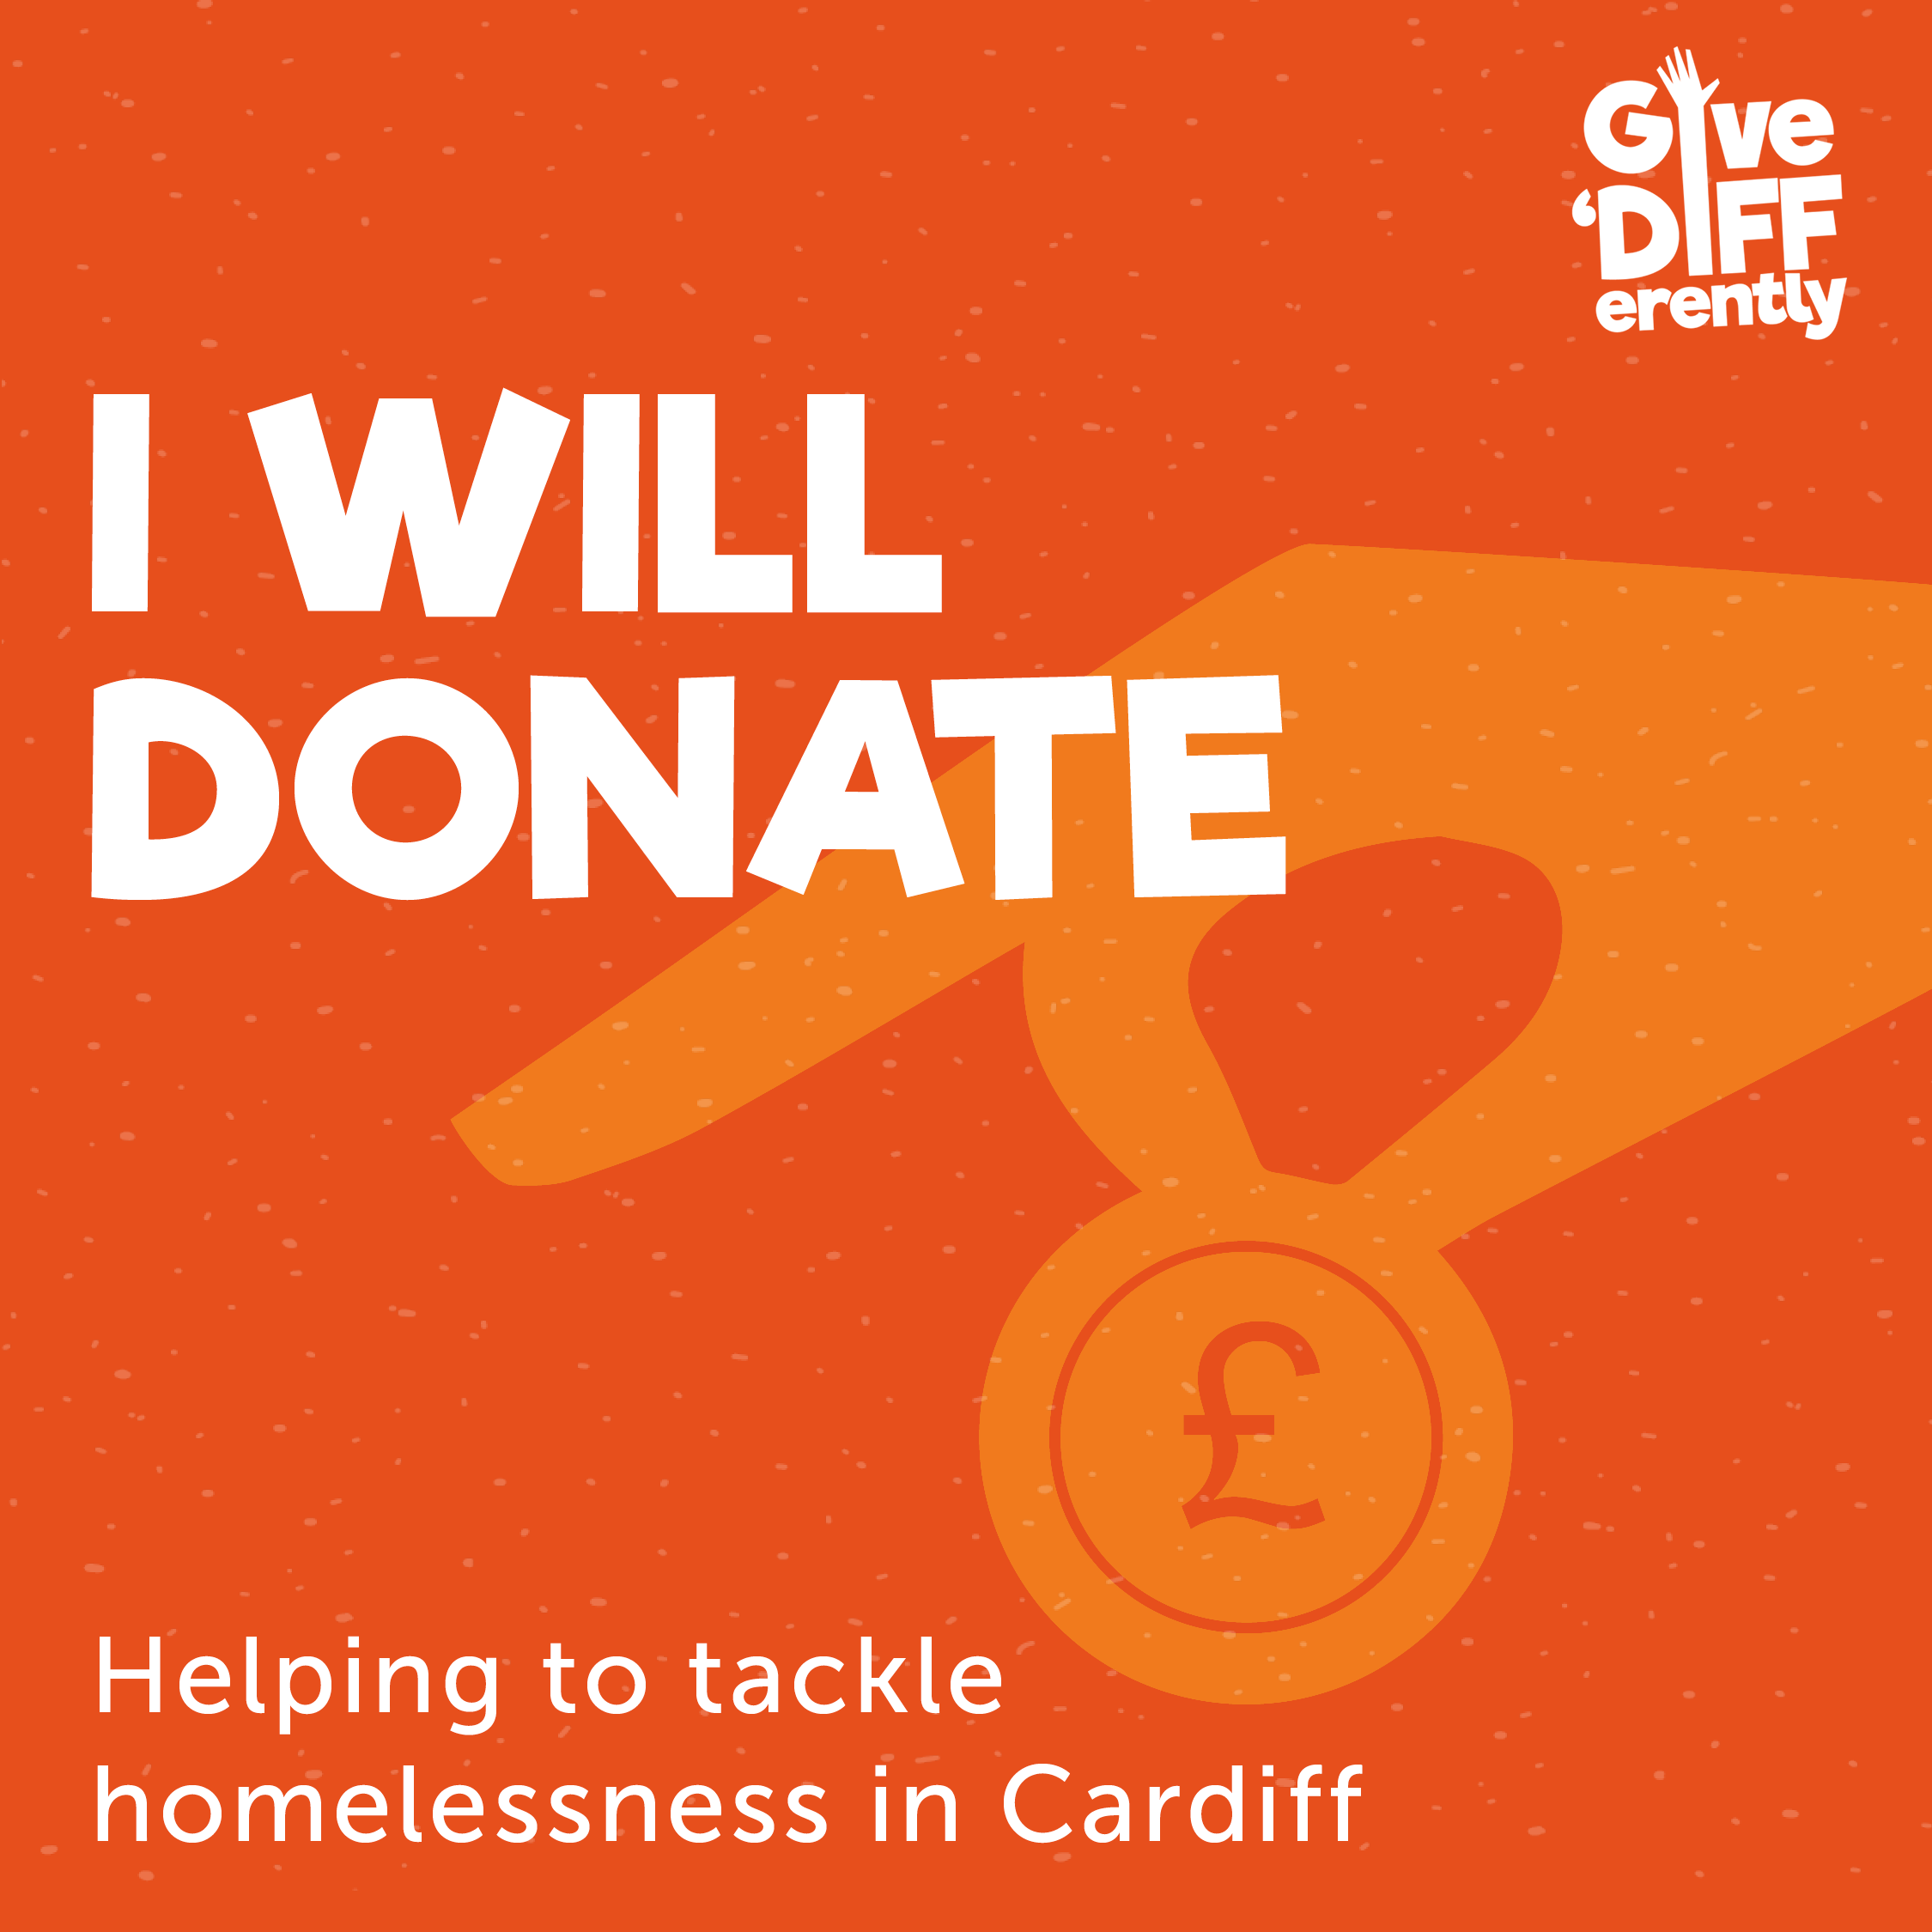 https://www.forcardiff.com/givedifferently/wp-content/uploads/2019/02/PLEDGES2.png